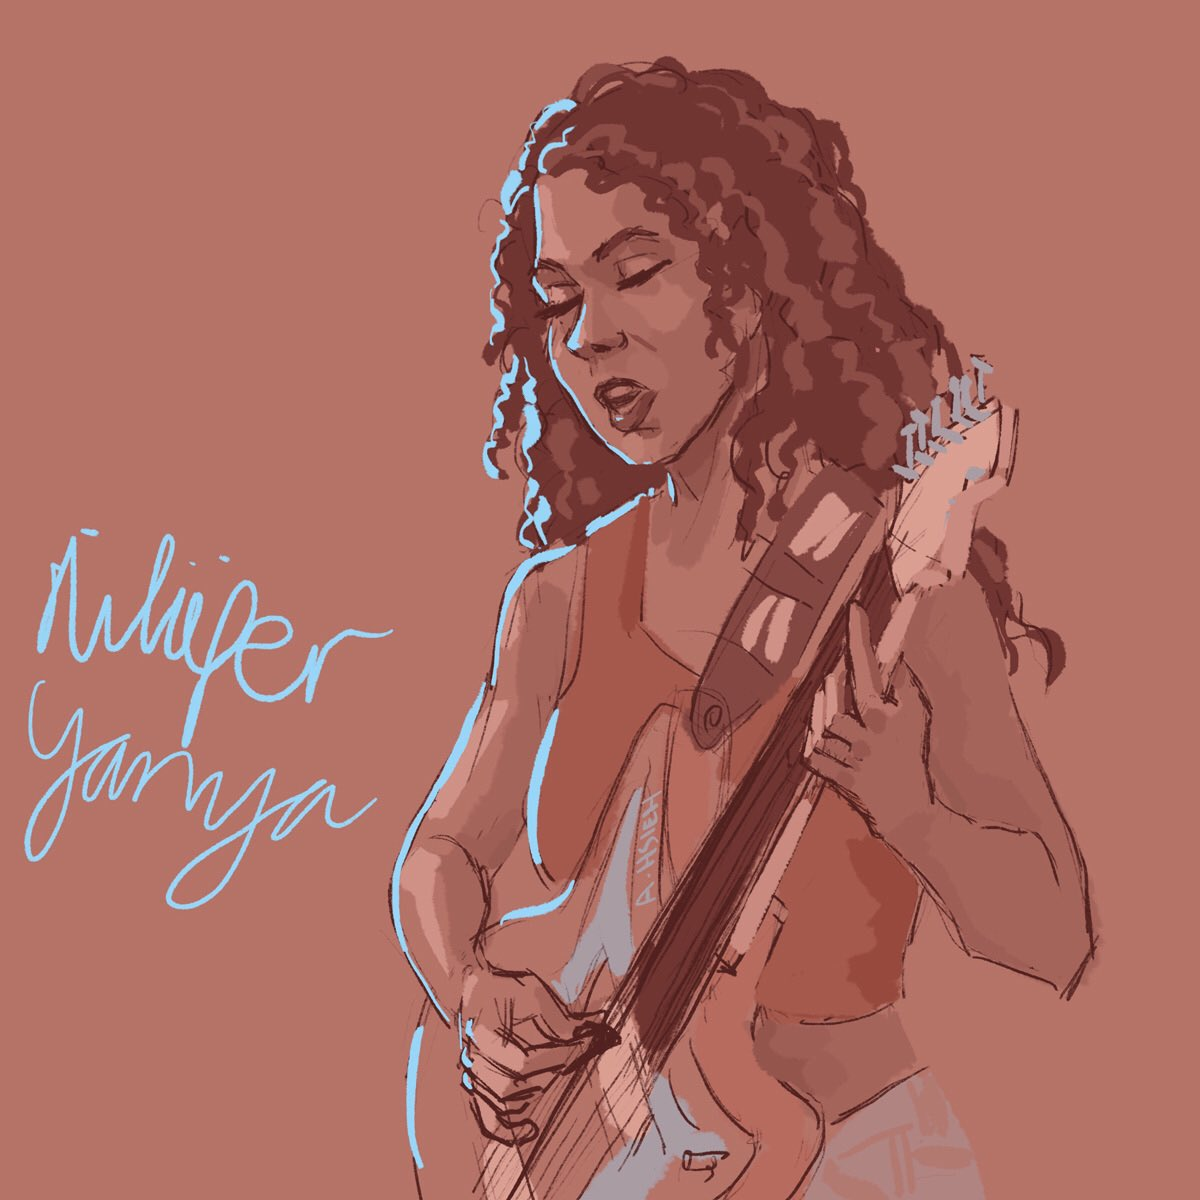 .@niluferyanya at #TinyDesk! #tinydesksketch https://n.pr/301oFMu